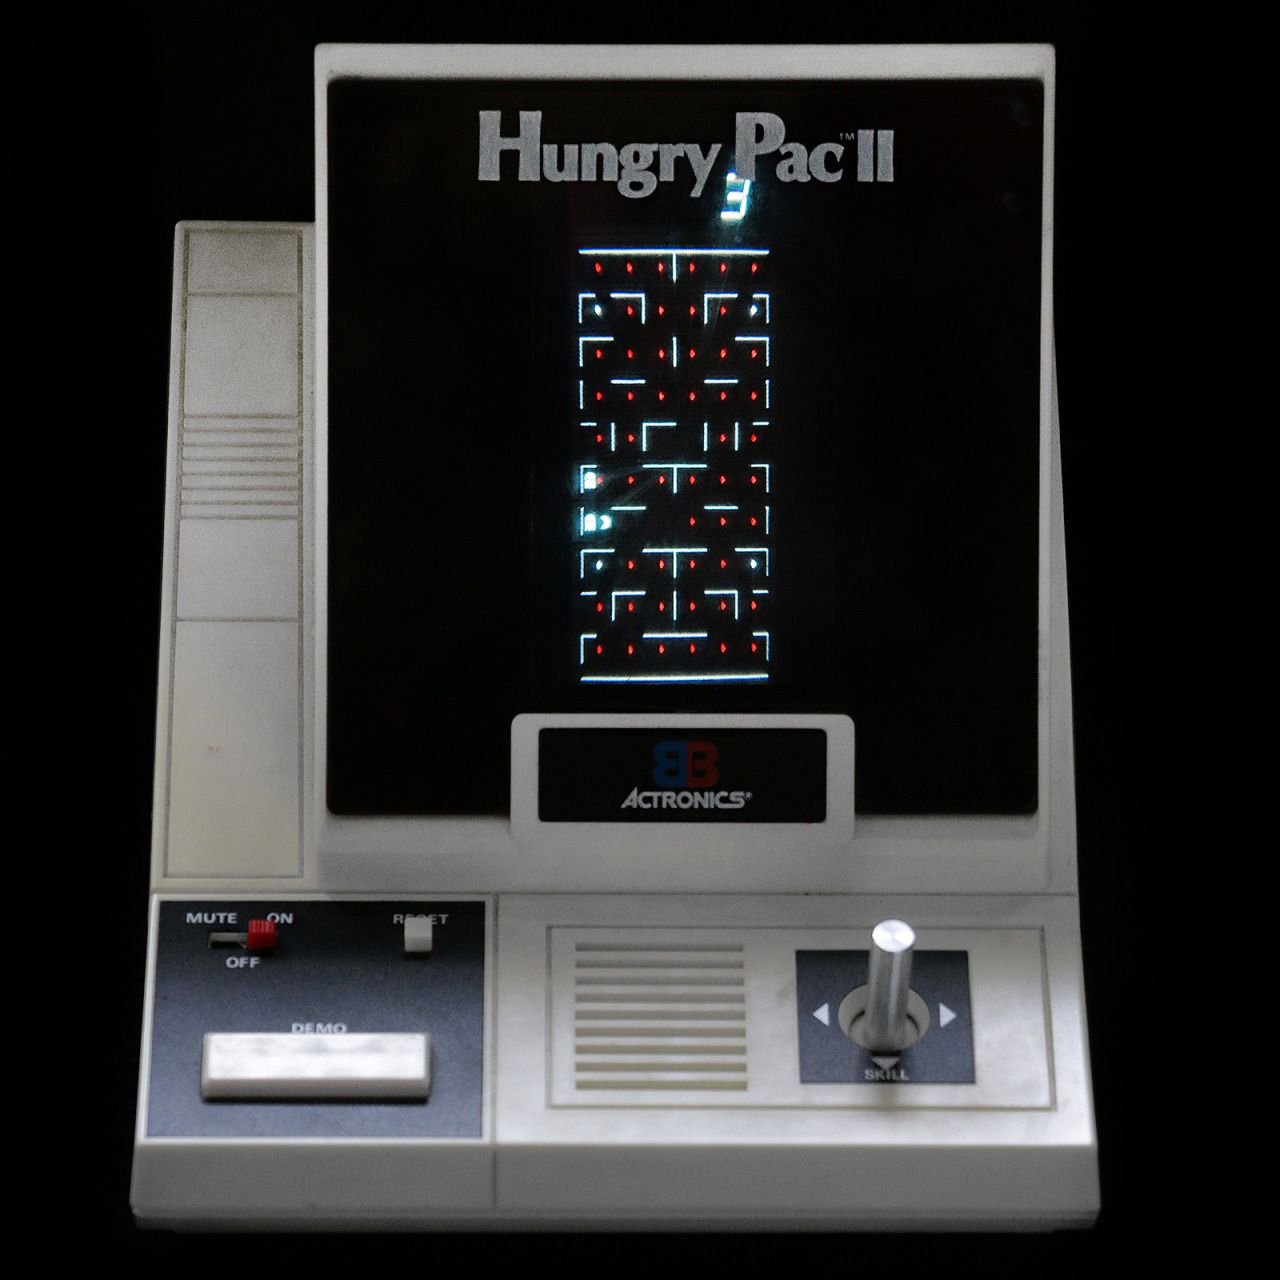 Hungry Pac II Tabletop Video Game | Vintage Video Games ...